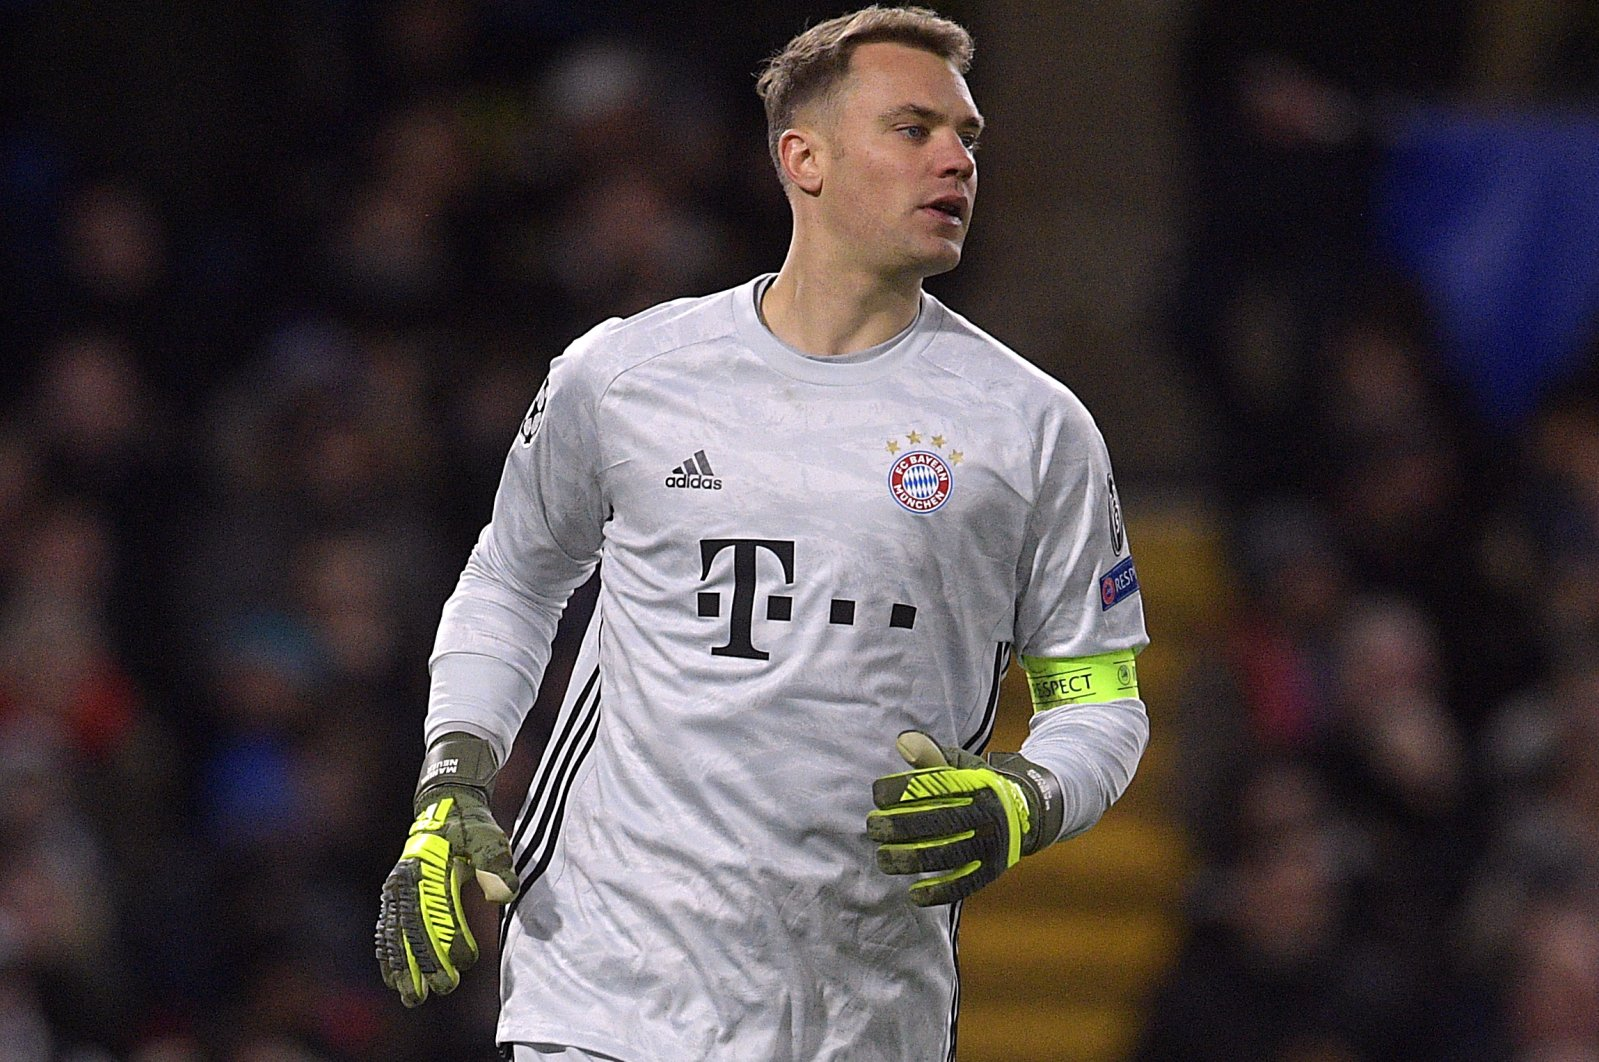 Manuel Neuer reacts during a UEFA Champions League Round match in London, Britain, Feb. 25, 2020. (EPA Photo)